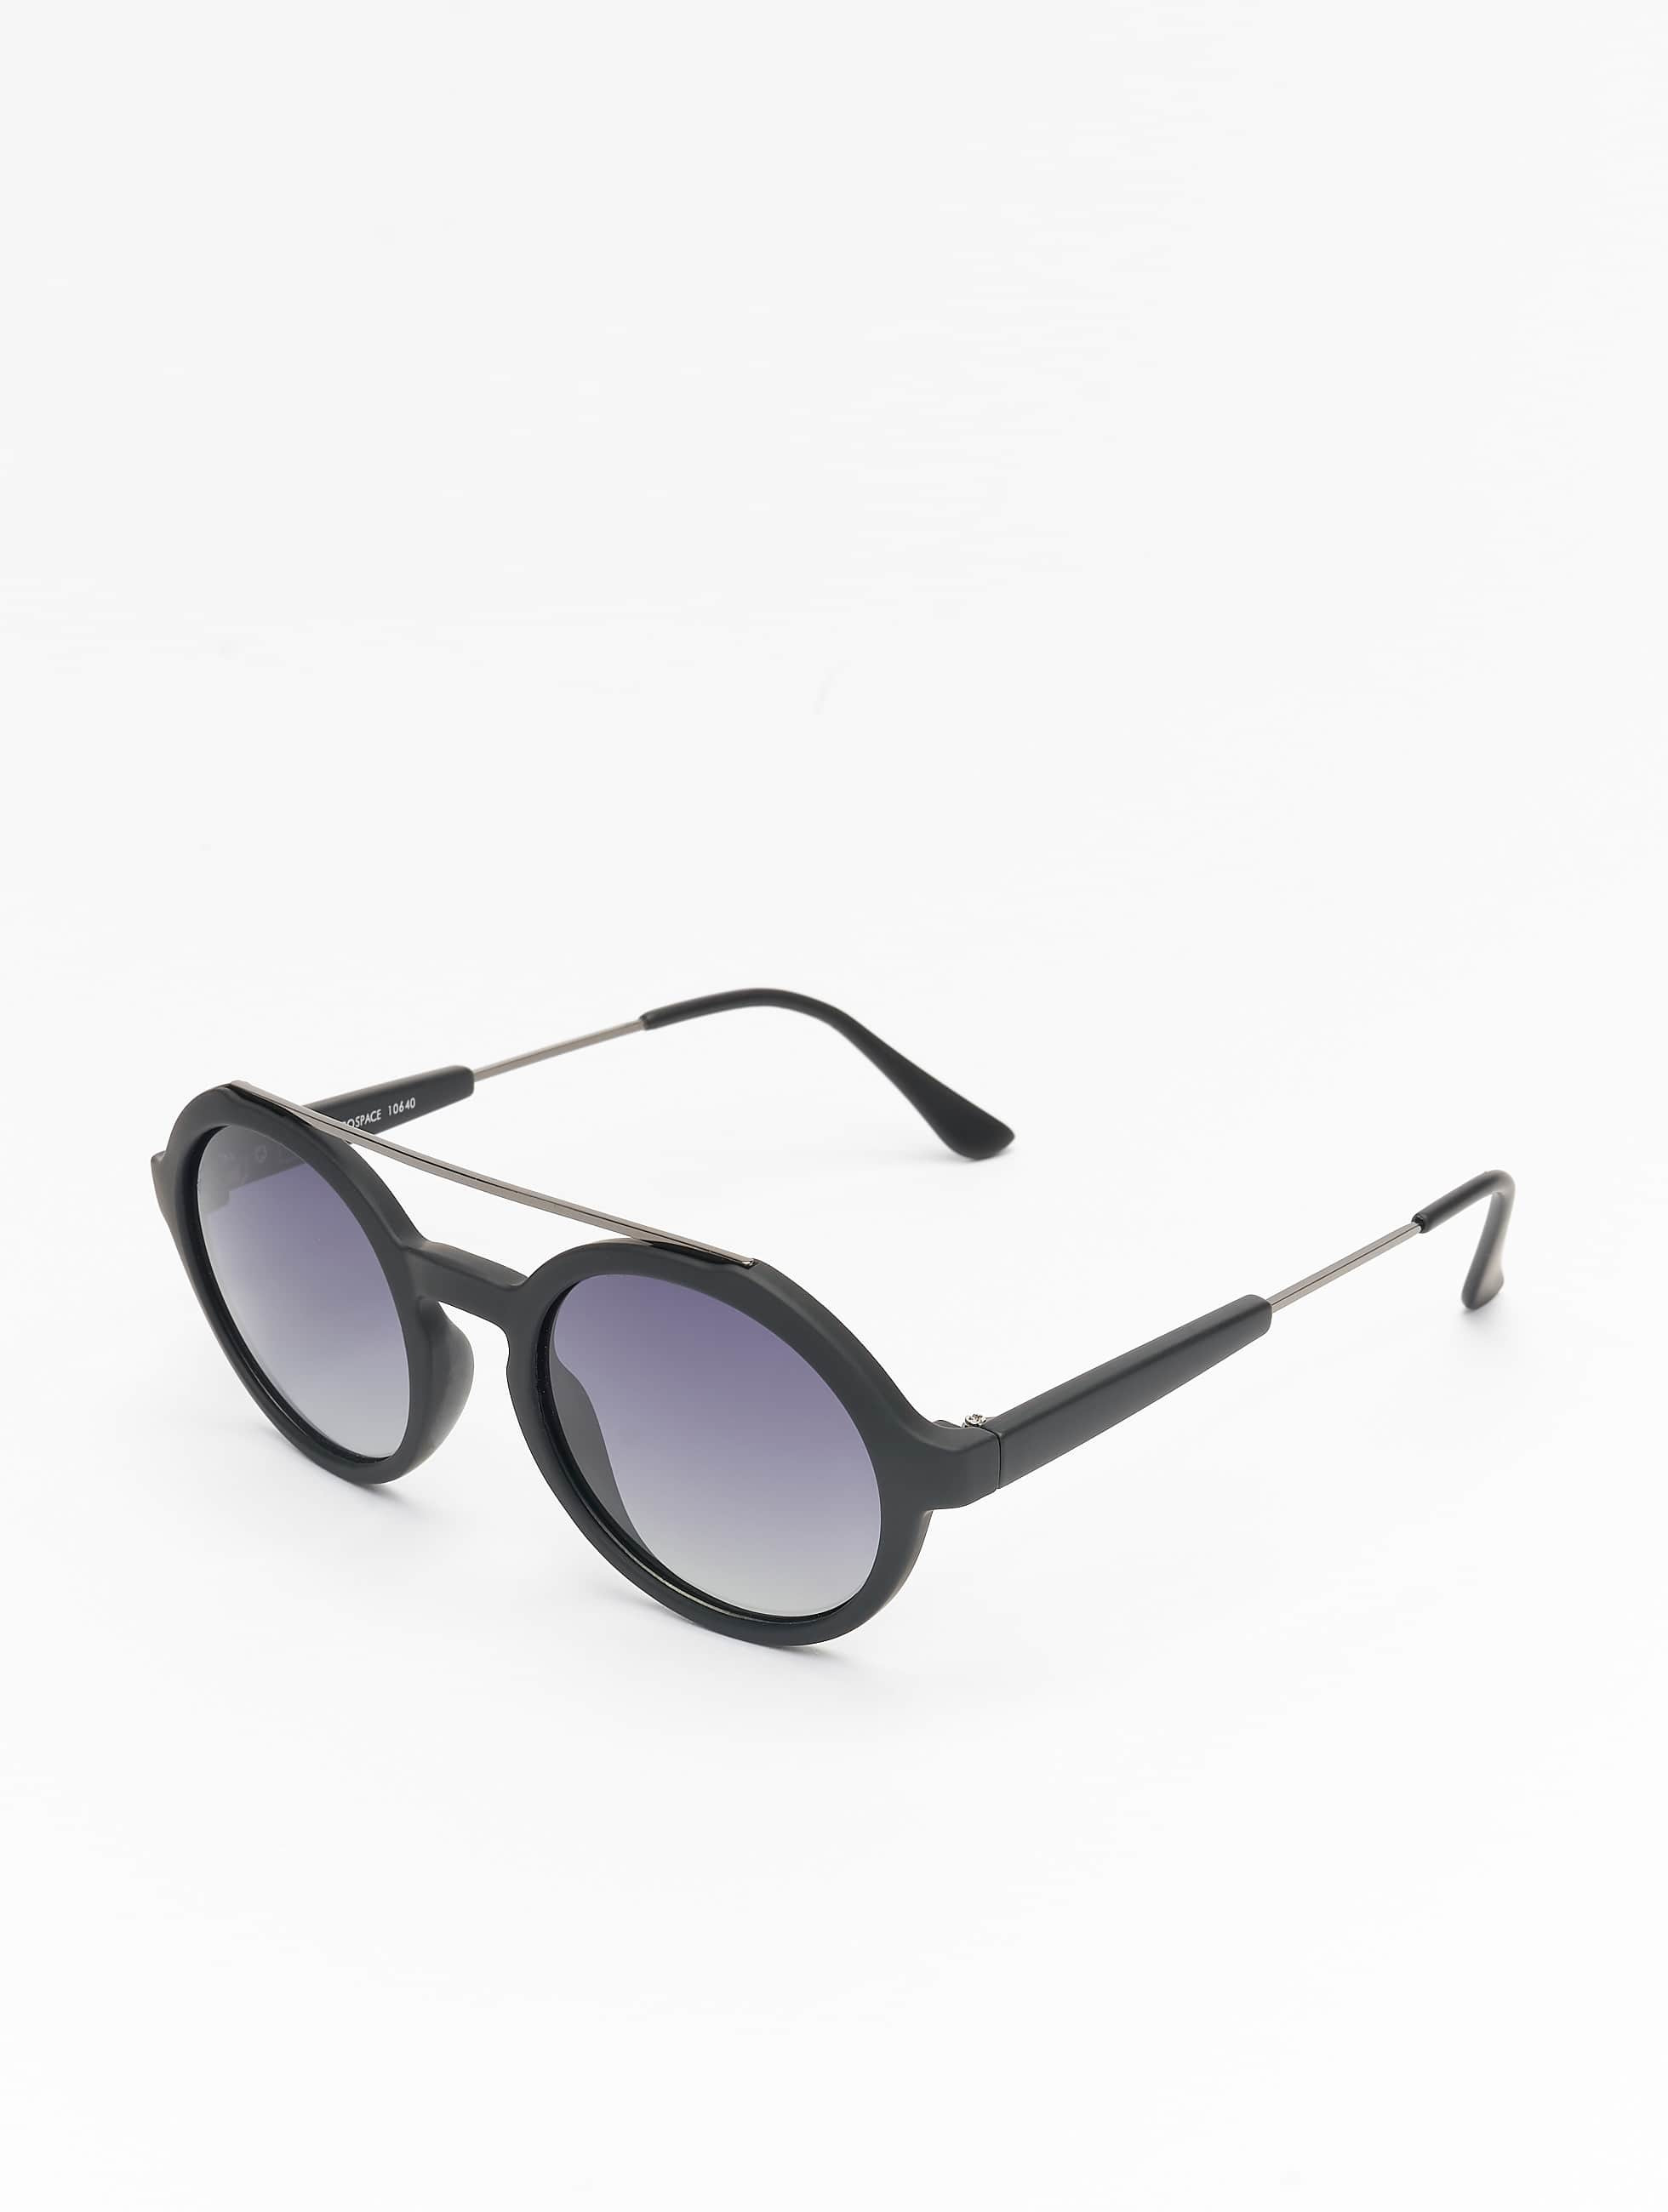 MSTRDS Очки Retro Space Polarized Mirror черный